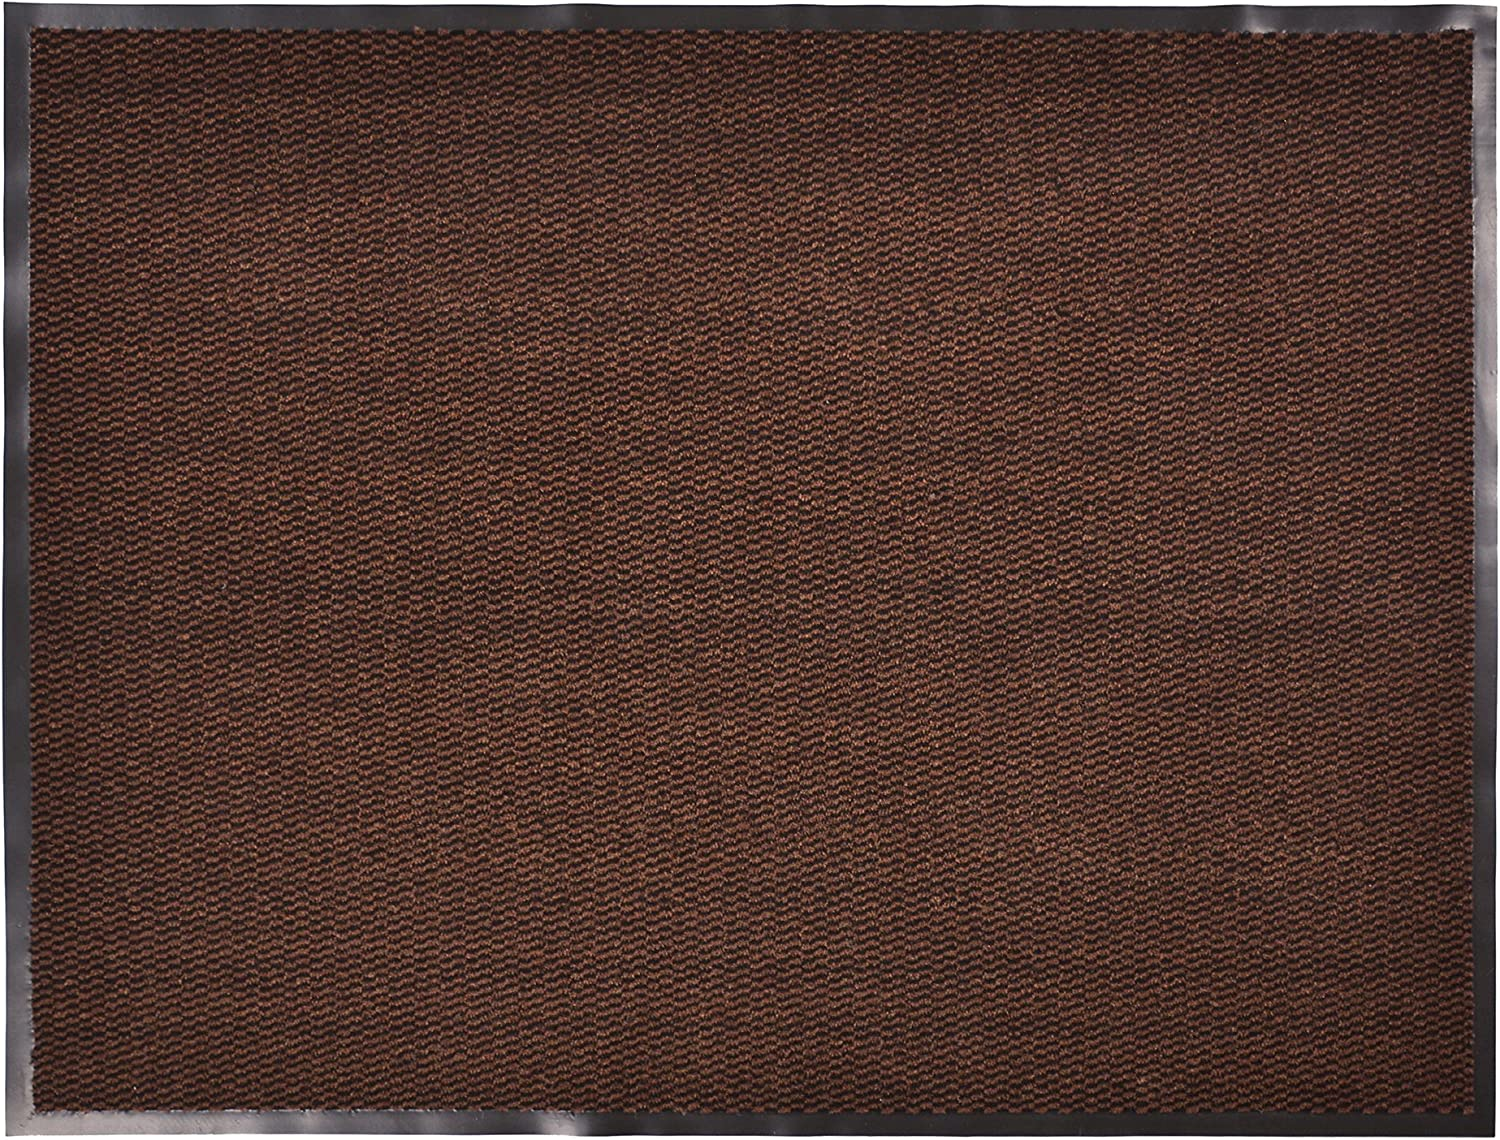 RugStylesOnline Entry Mat Doormat Entrance Mat and Hallway Runner Entry Collection Brown Black color Slip Skid Resistant PVC Backing Anti Bacterial (Brown-Black, 3' x 4')